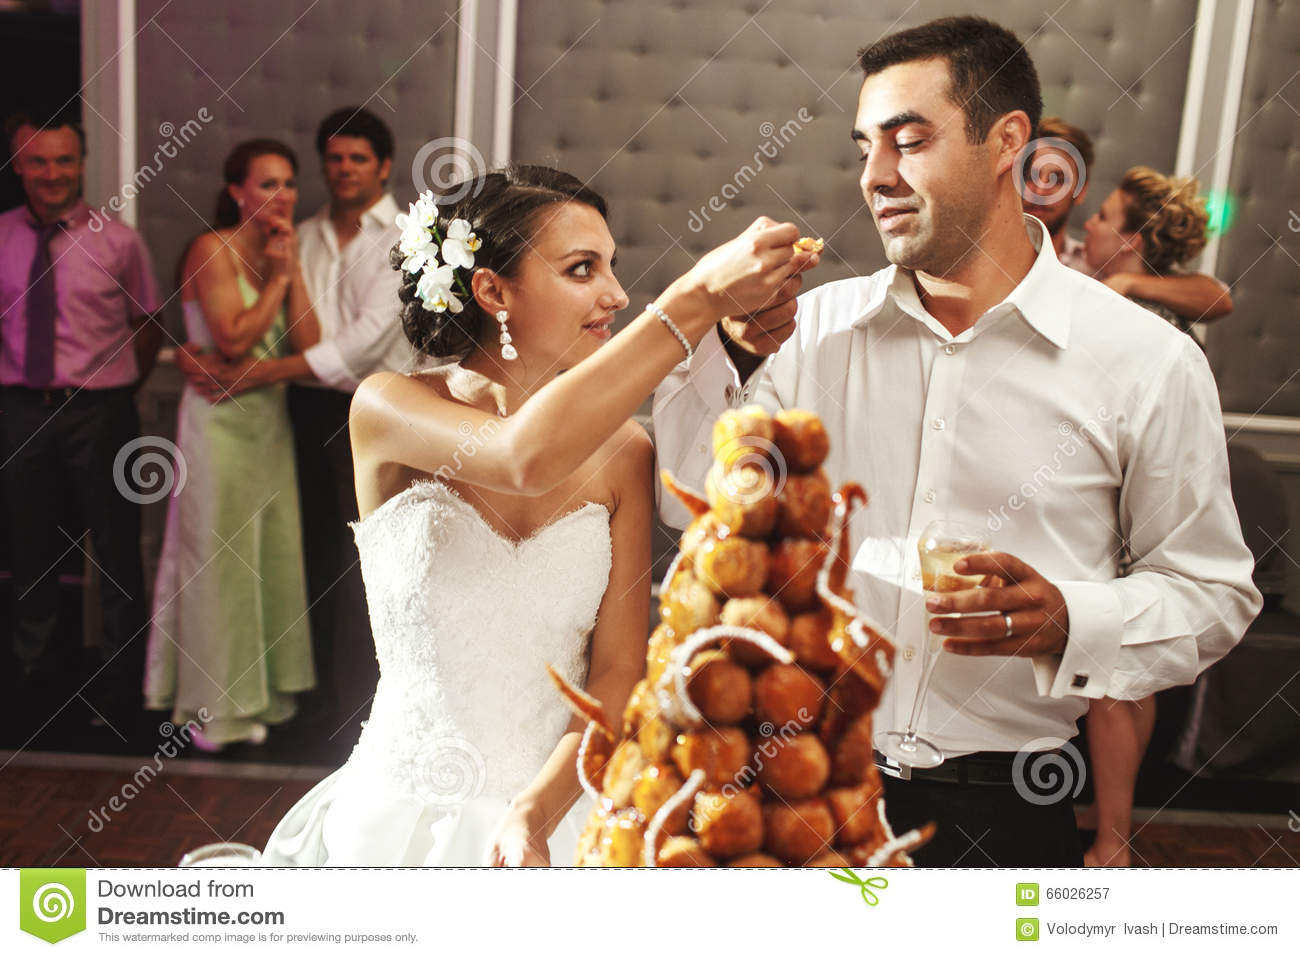 dream meaning eating wedding cake happy married delicious chocolate wedding 13733